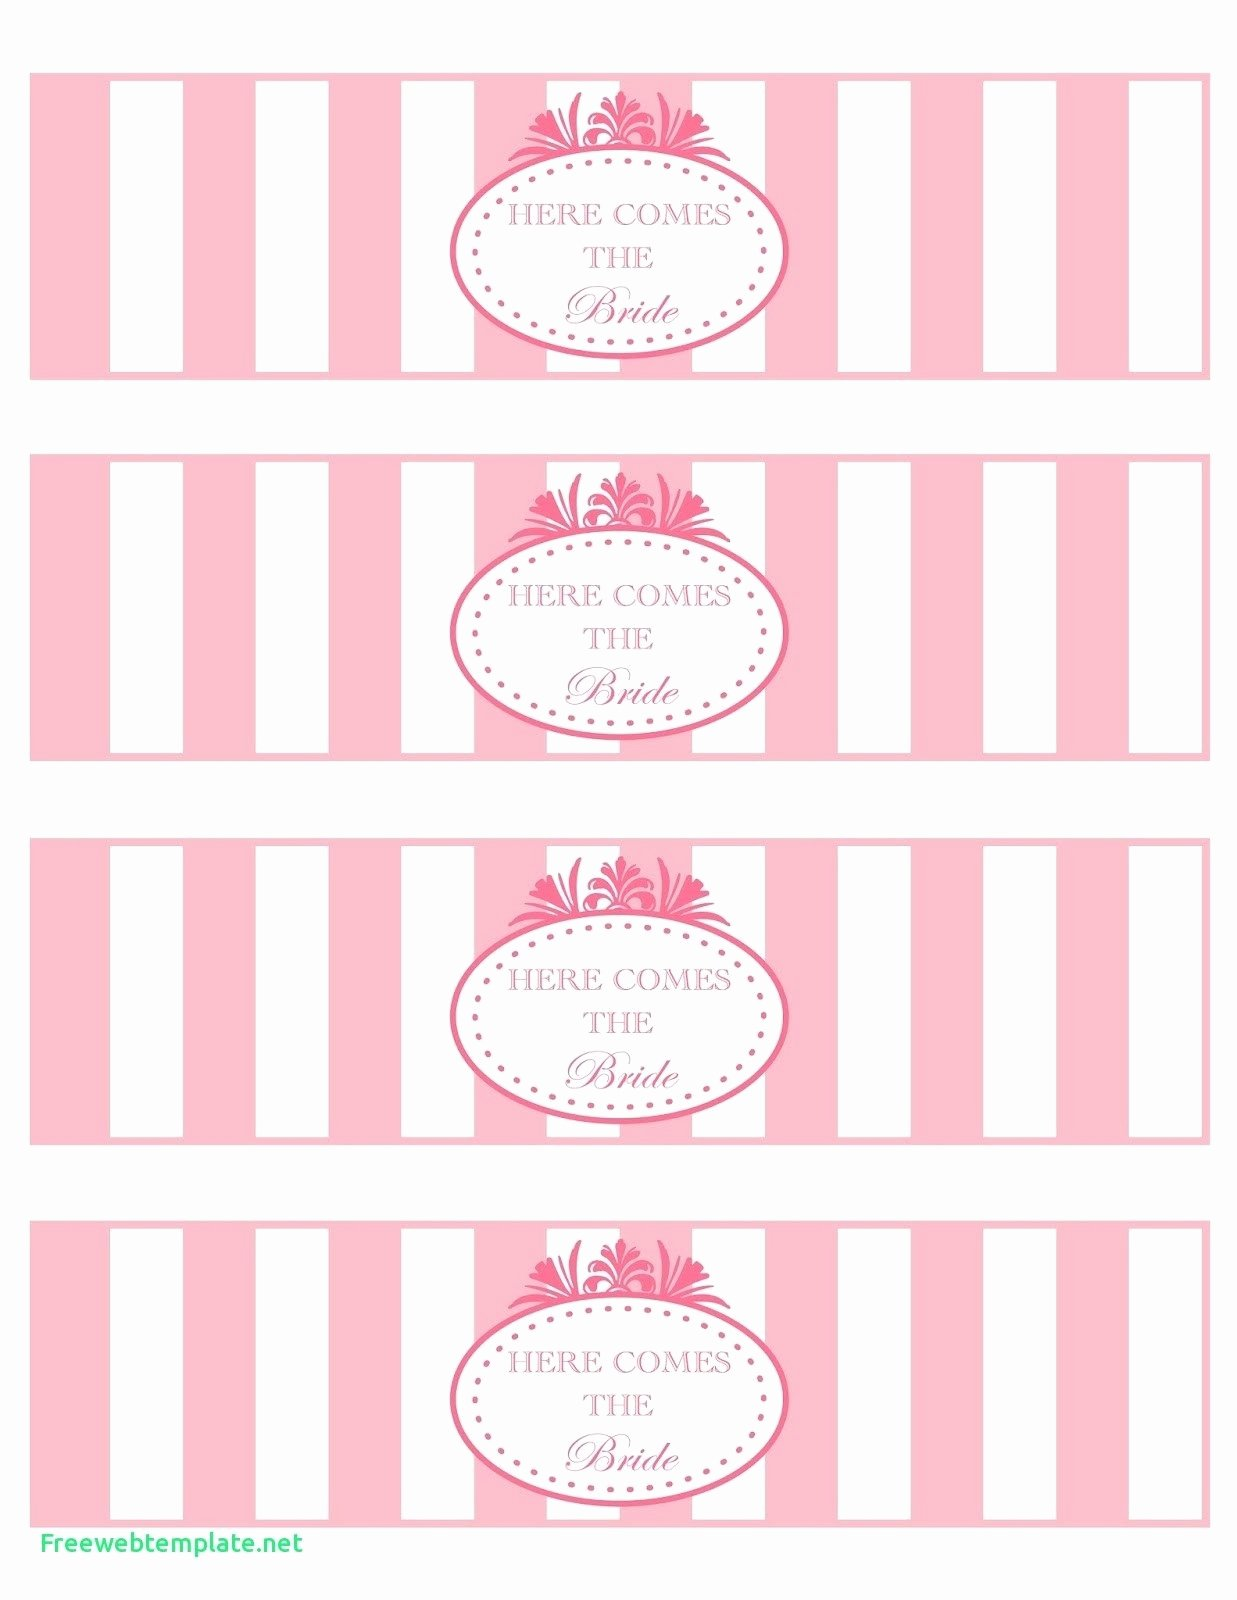 Free Water Bottle Label Template Baby Shower Fresh Printable Water Bottle Labels Free Templates